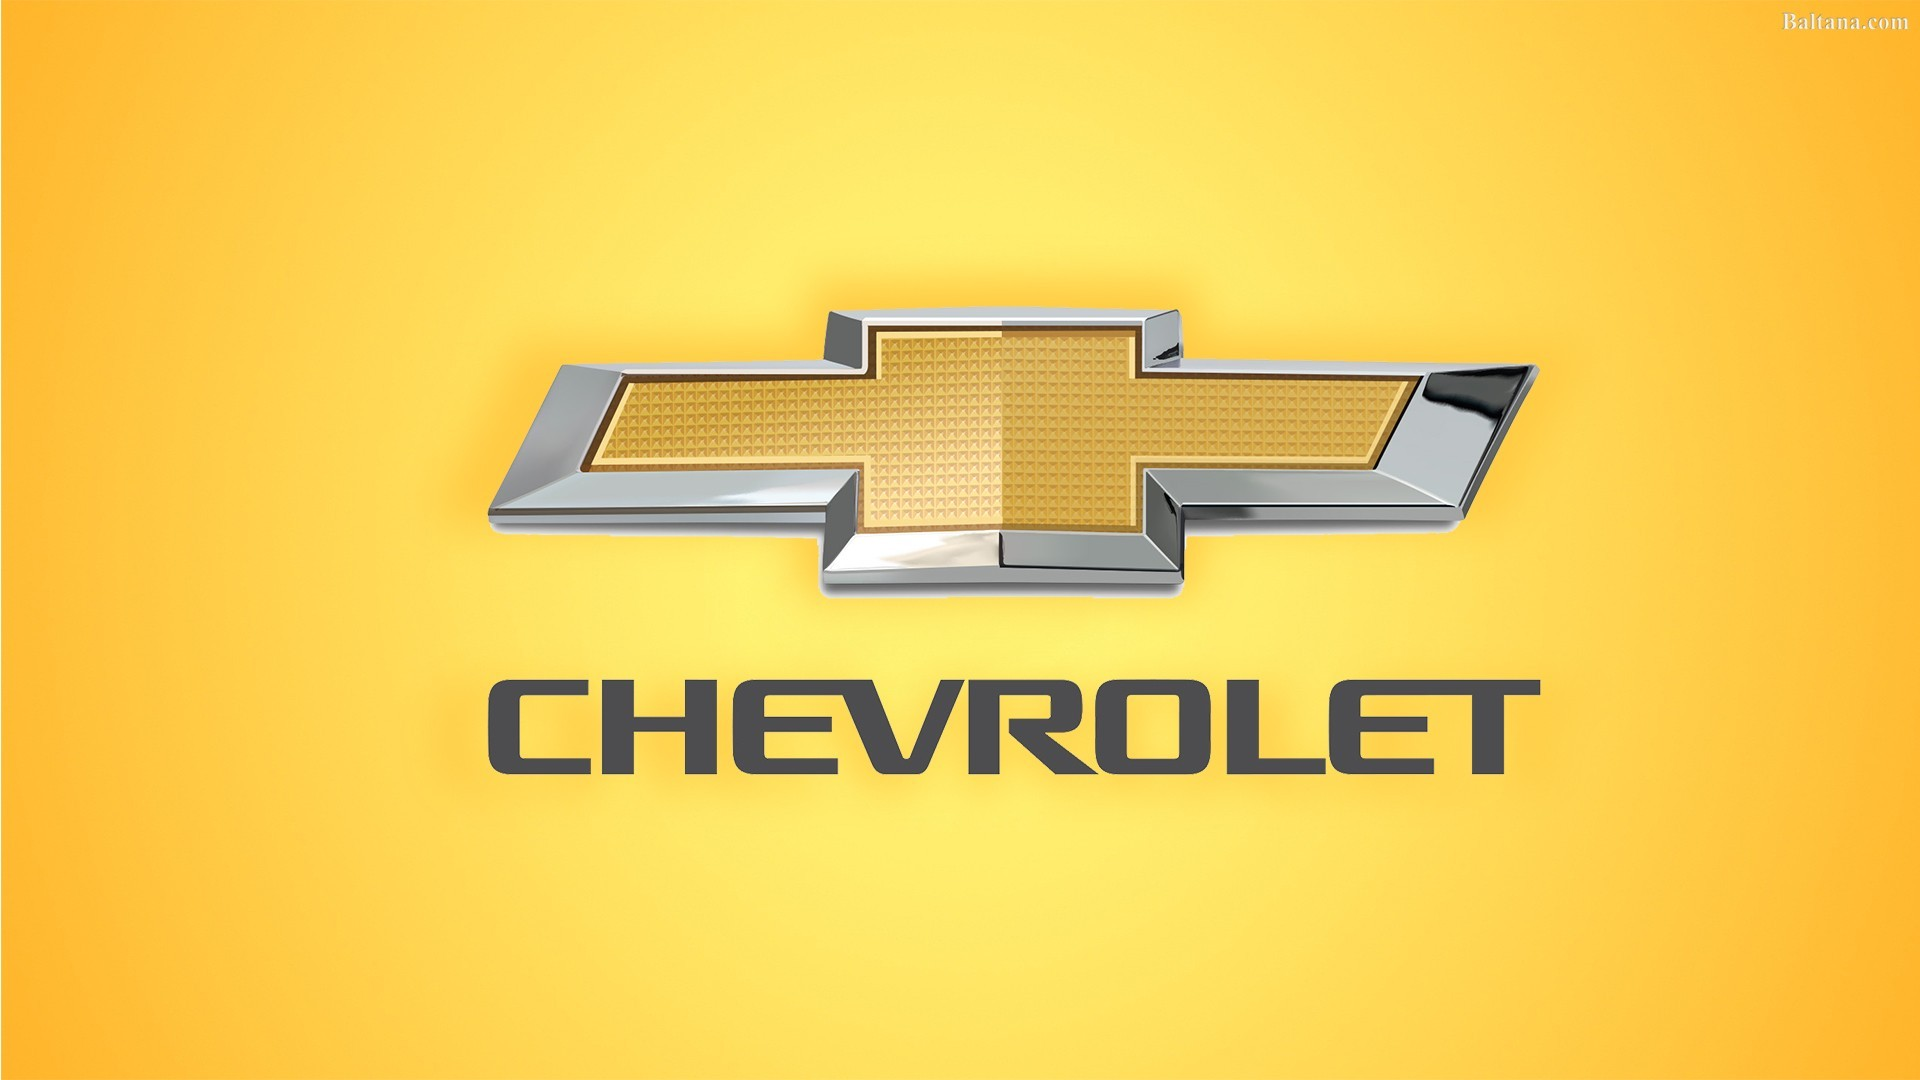 Chevrolet Logo Wallpapers Wallpapers All Superior Chevrolet Logo Wallpapers Backgrounds Wallpapersplanet Net